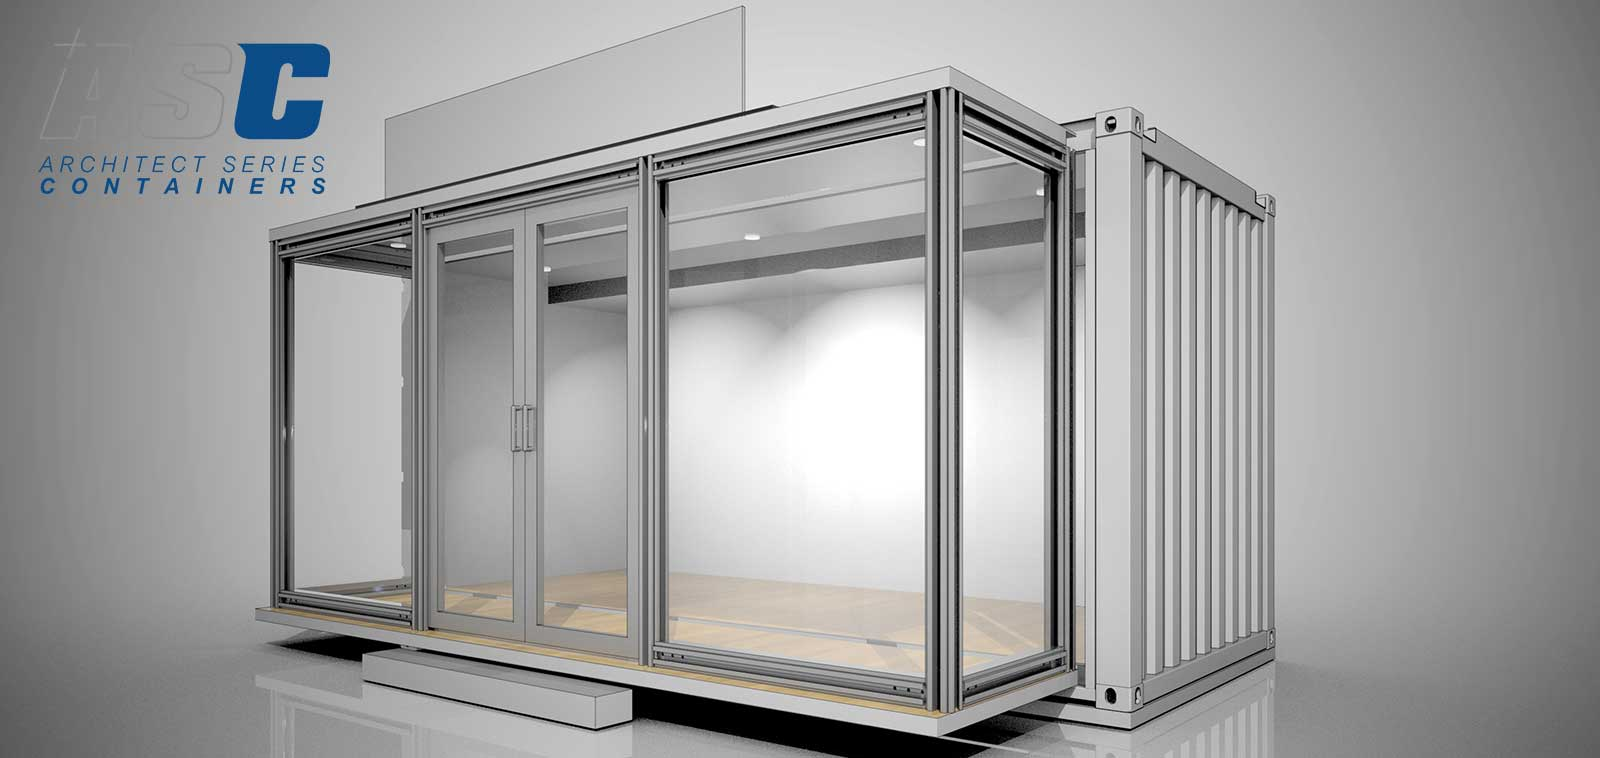 Mobile Healthcare Architect Series Containers